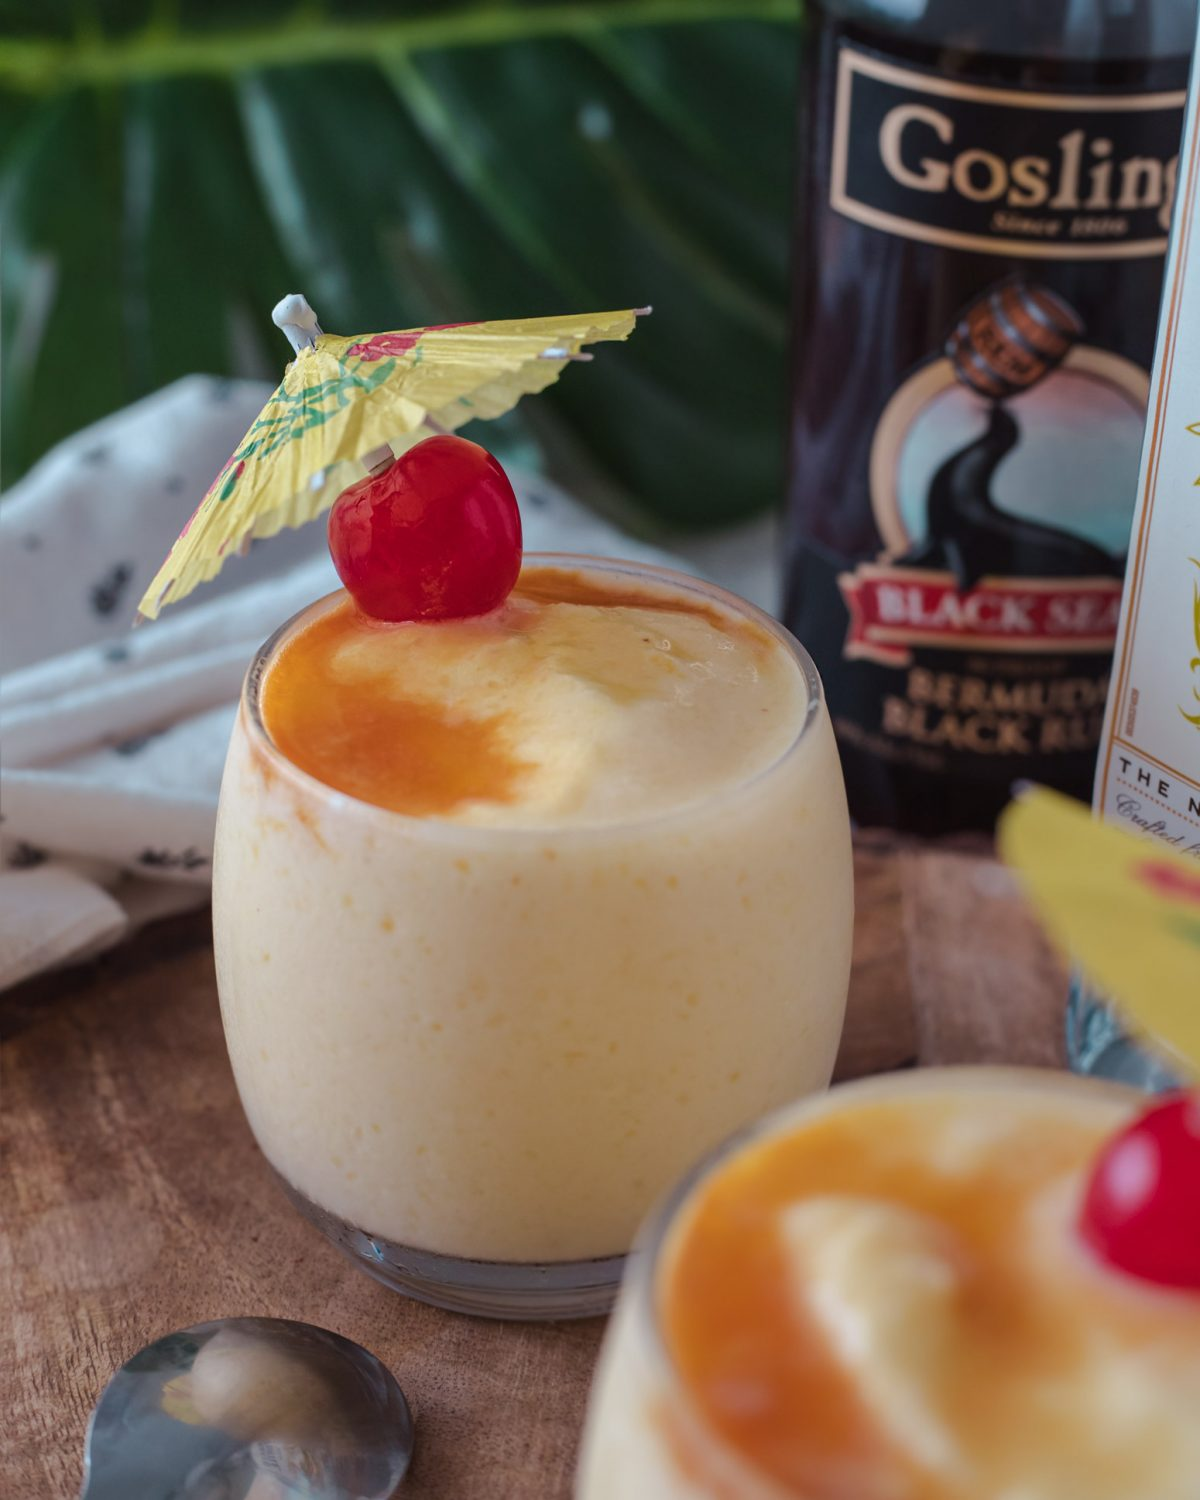 Our classic piña colada recipes made with white rum and black rum with delicious notes of coconut and fresh pineapple. It's a perfectly smooth and creamy frozen cocktail! #ElleTalk #cocktailrecipe #cocktails #rum #whiterum #darkrum #blackrum #rumcocktail #pinacolada #drinkrecipe